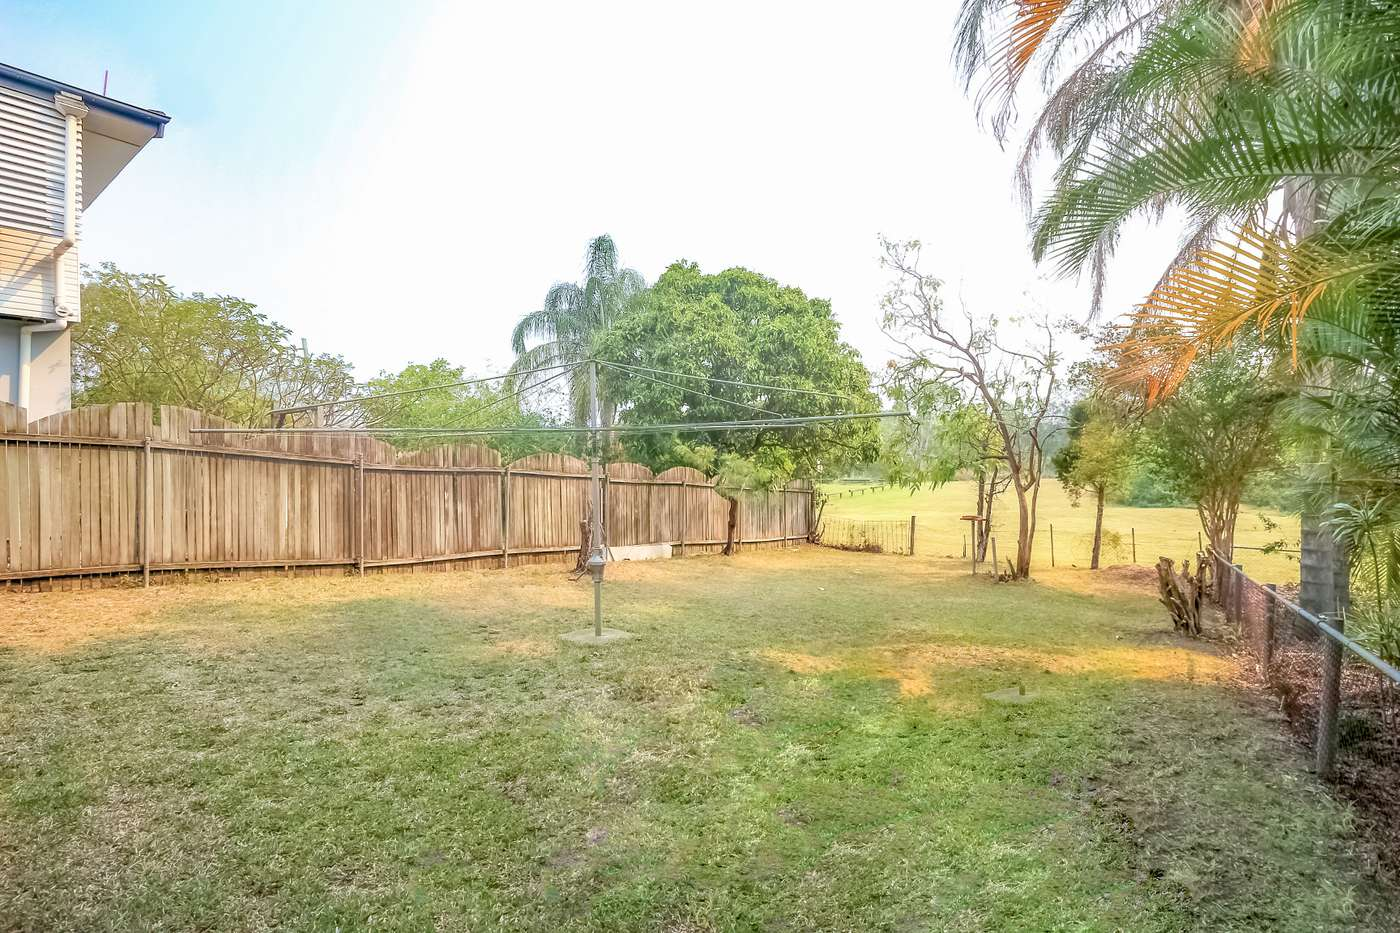 Main view of Homely house listing, 95 Norman Avenue, Norman Park, QLD 4170